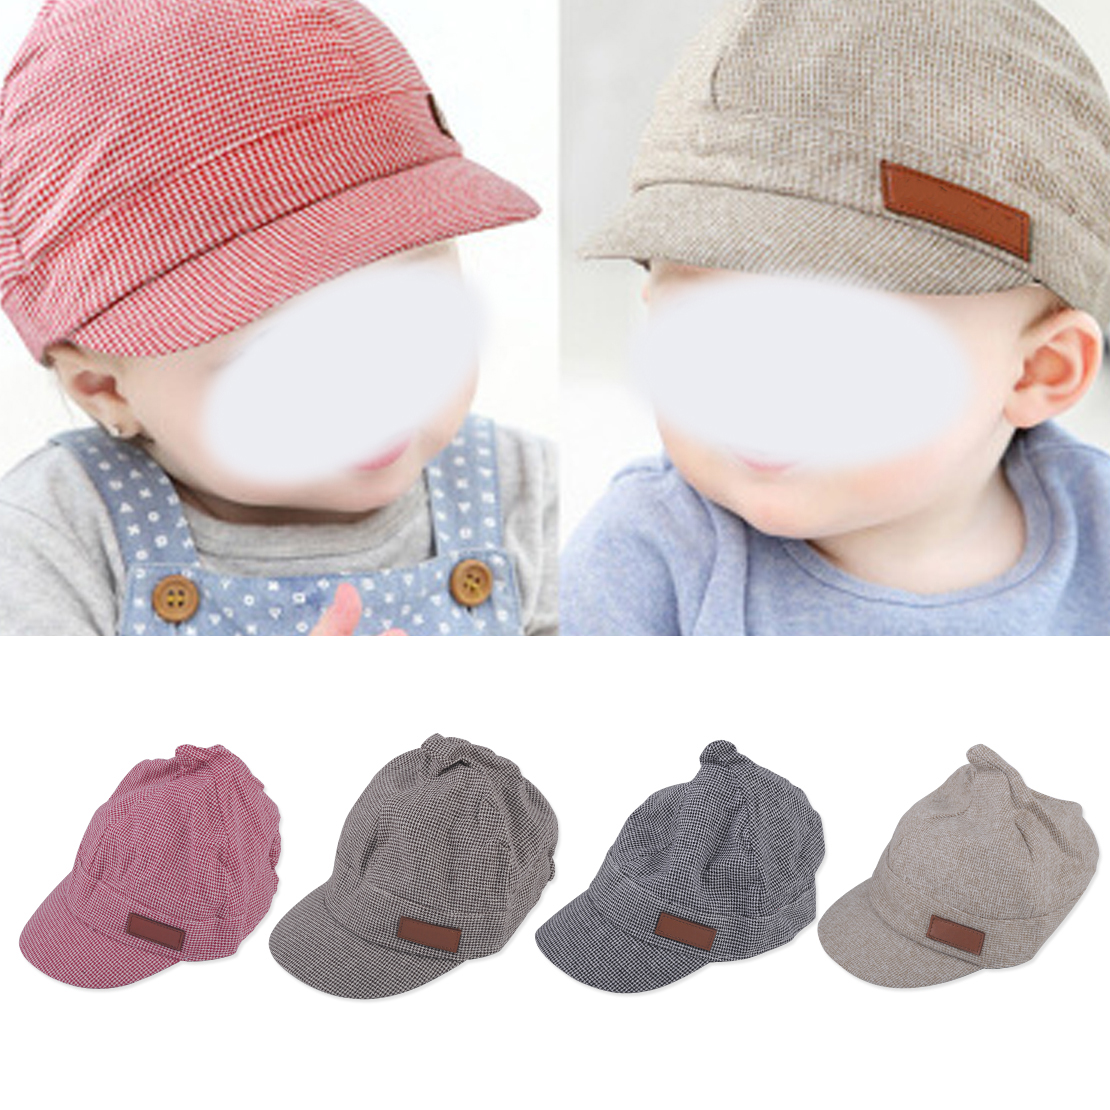 ac71a871b91bb Details about Cute Toddler Kids Infant Sun Cap Baby Girls Boys Beach Cotton  Beret Baseball Hat